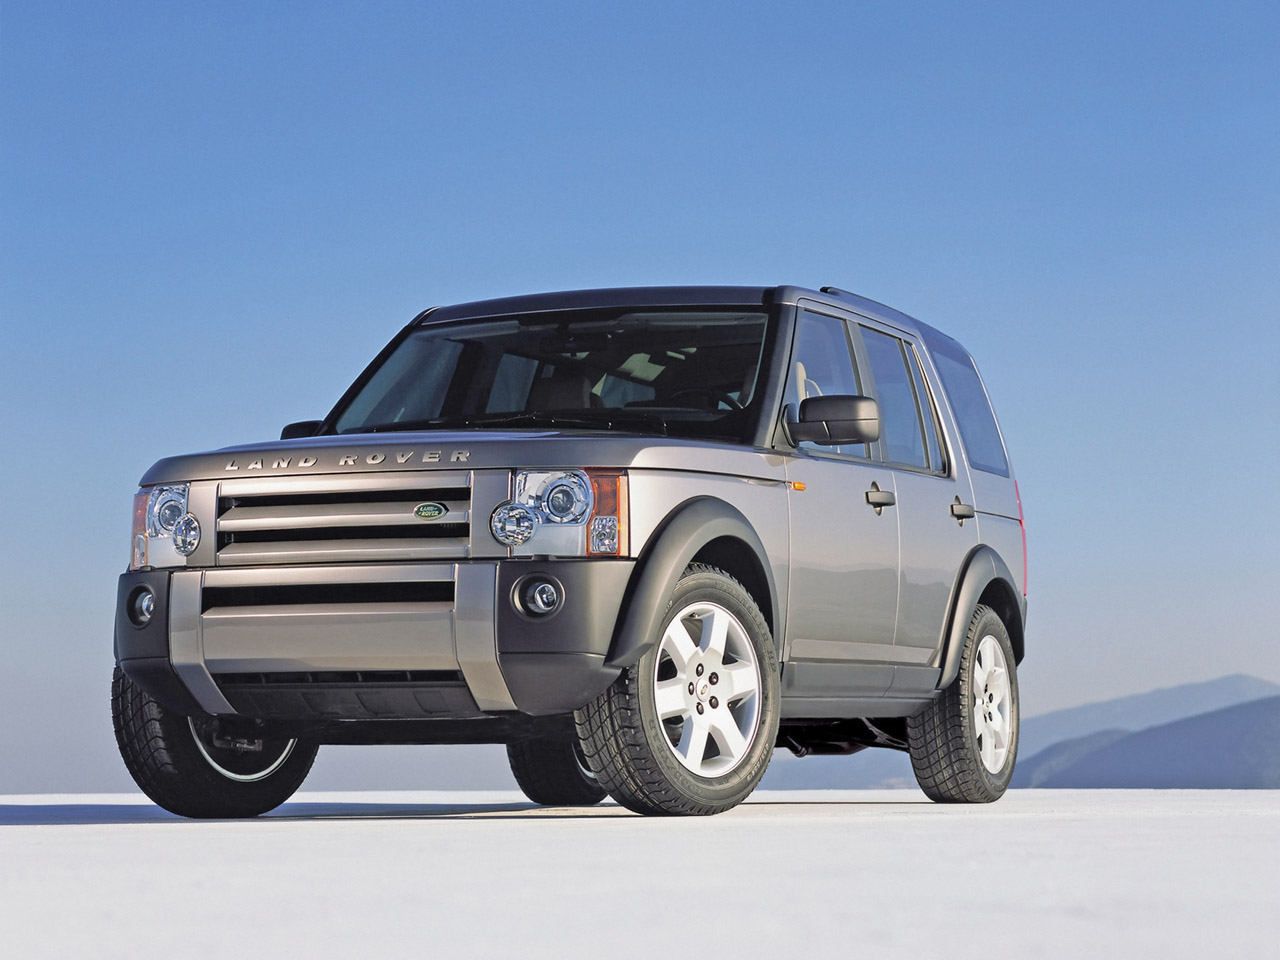 Land Rover Discovery Cars wallpaper gallery Free Download Image Of